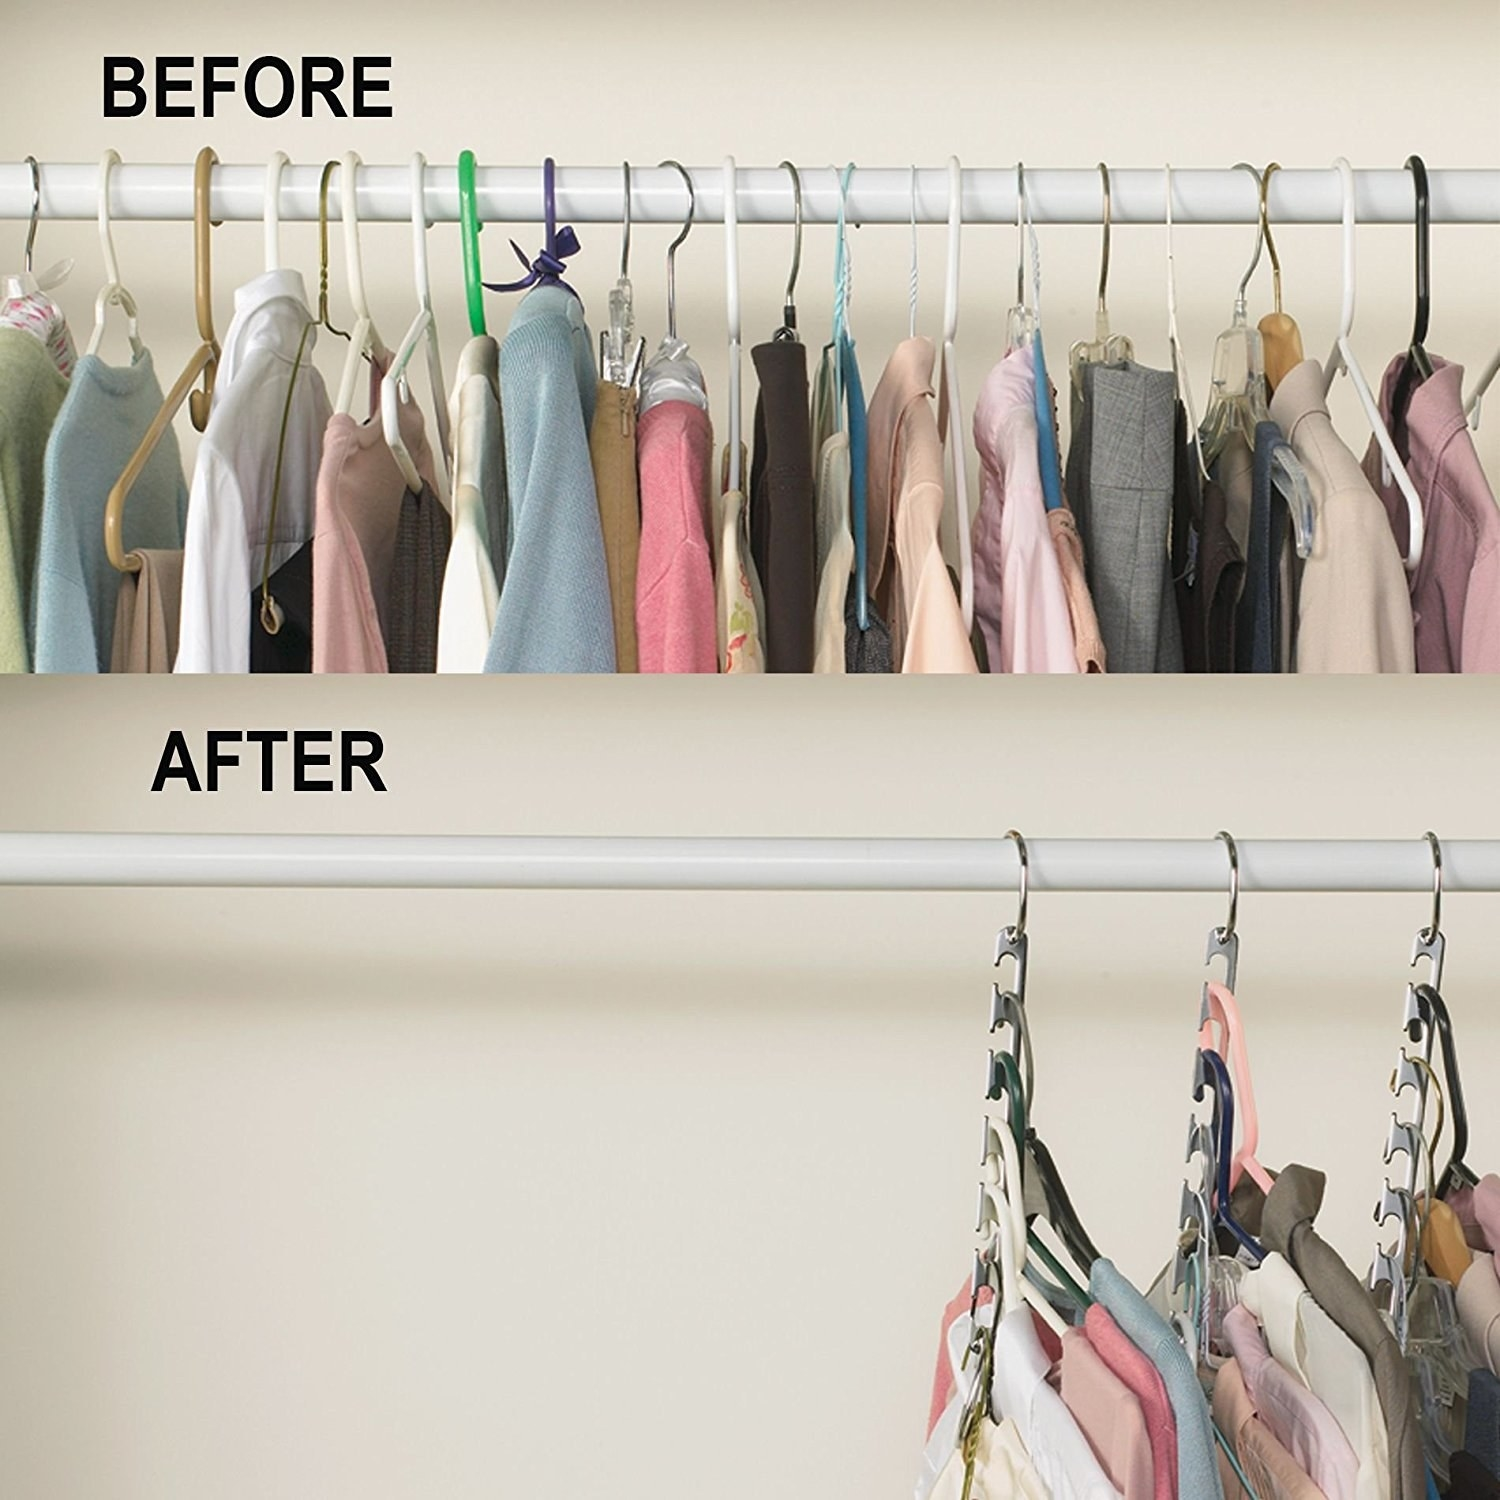 """A closet full of clothes labeled """"Before"""" followed by a much emptier closet labeled """"After"""" with clothes hanging on space-saving vertical organizers"""